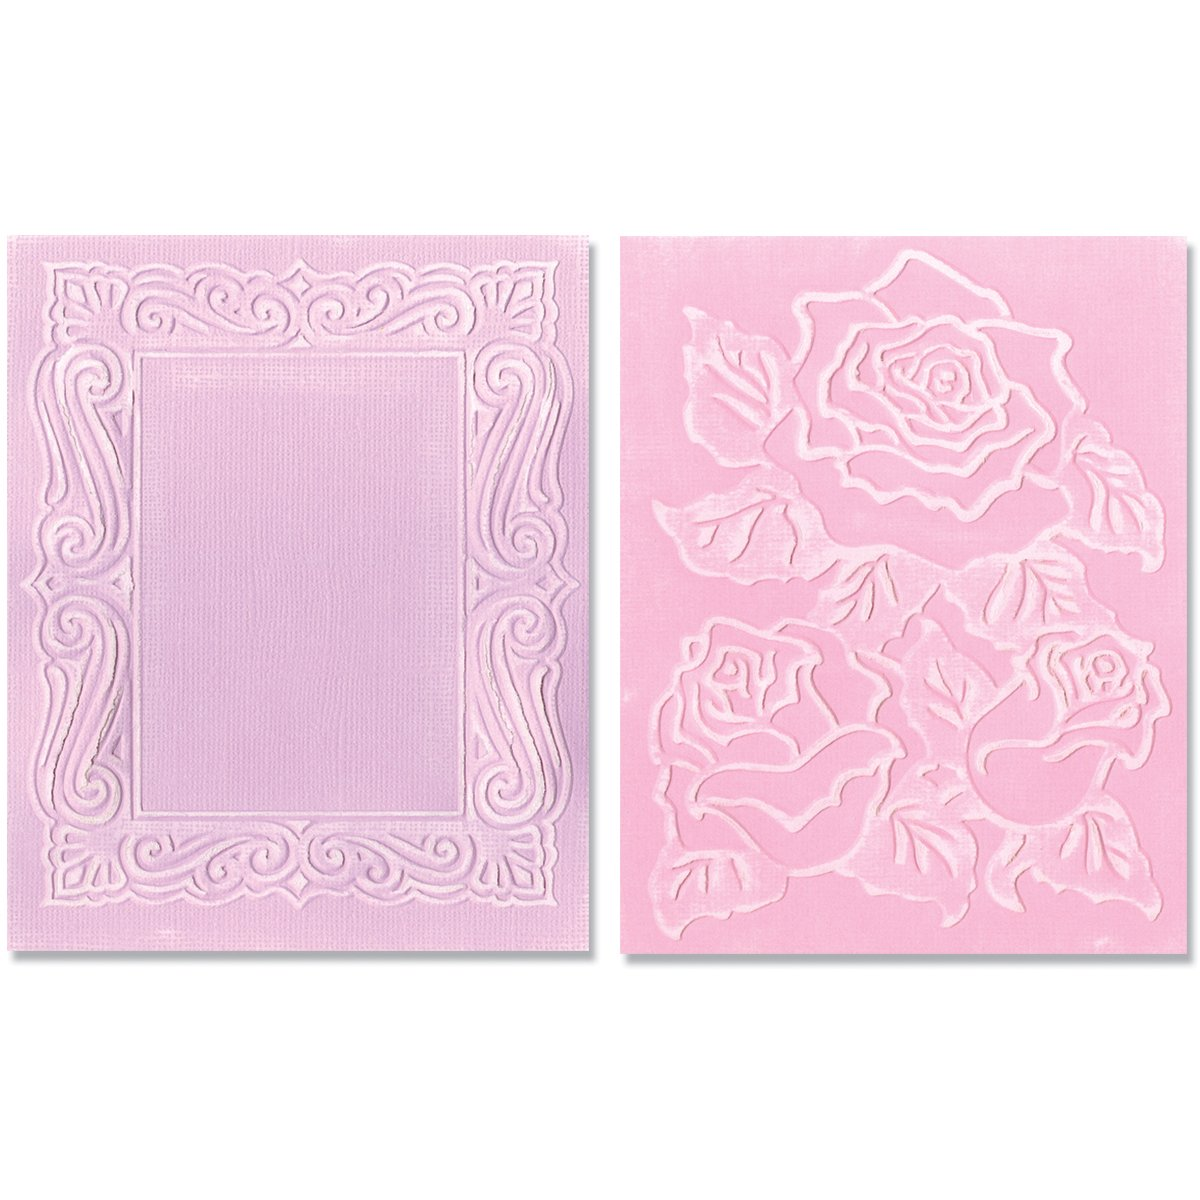 Sizzix Textured Impressions Embossing Folders 2-Pack, Roses and Frame Set by Jen Long-Philipsen 657670